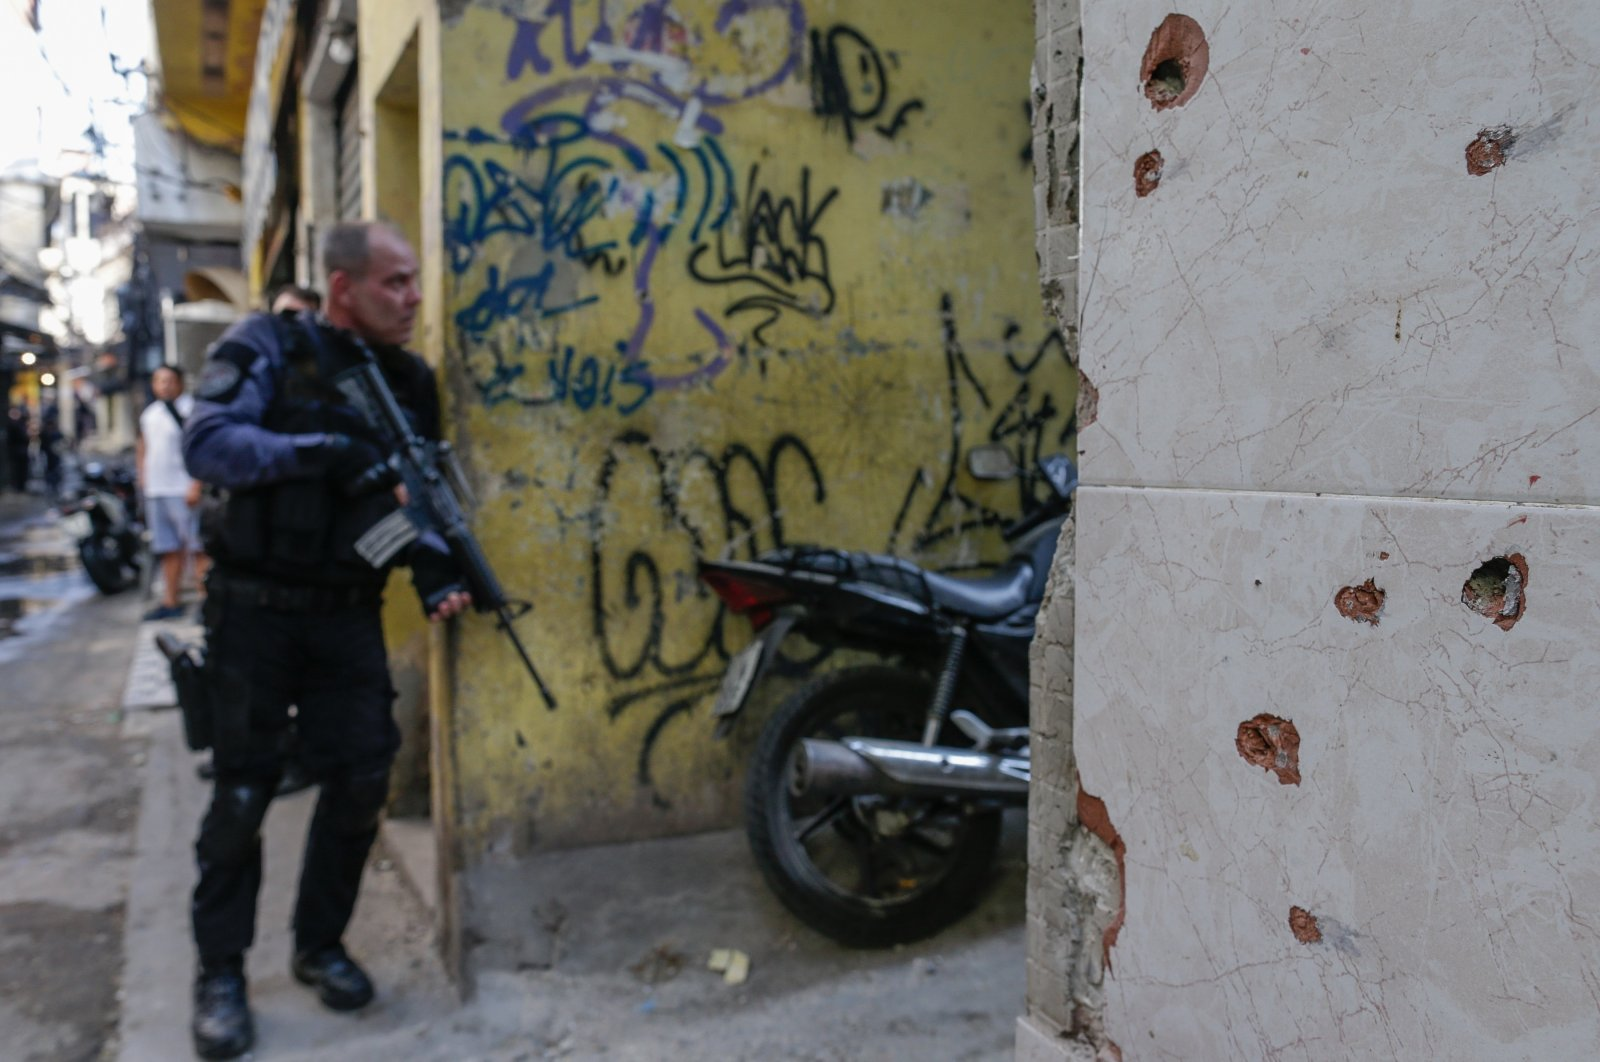 Members of the Police carry out a police operation against a gang of drug traffickers, in a favela of Rio de Janeiro, Brazil, May 6, 2021. (EPA Photo)